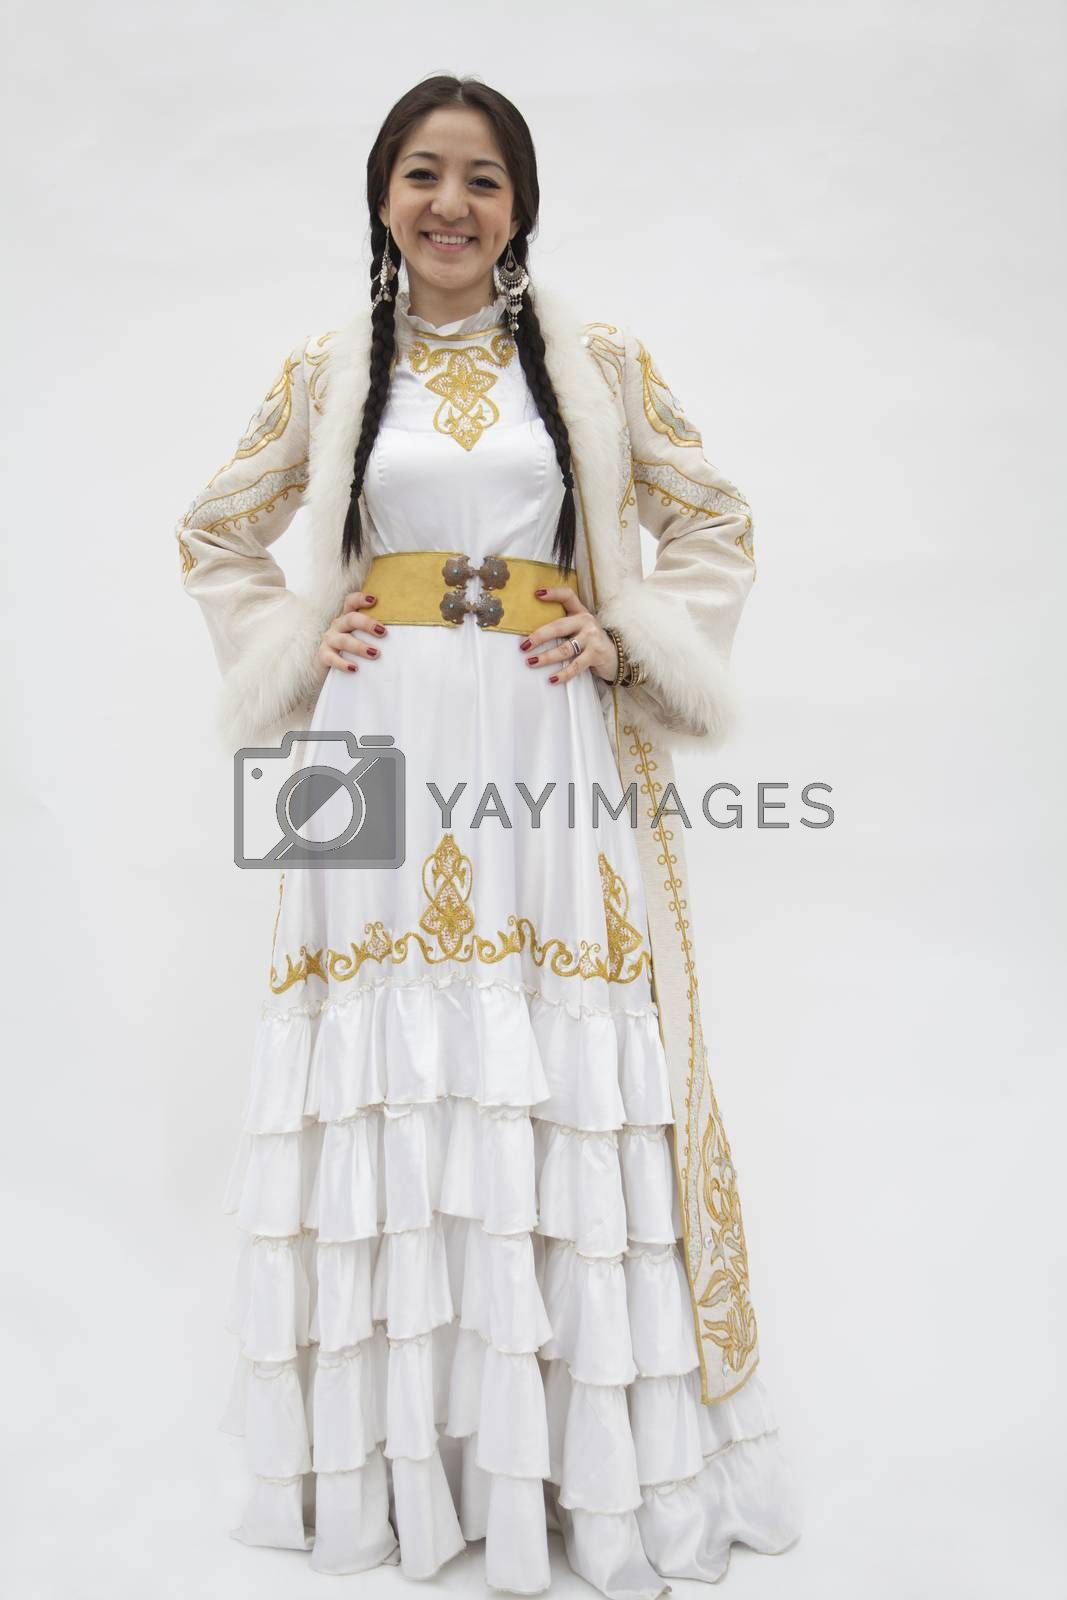 Portrait of young smiling woman with braids in traditional clothing from Kazakhstan, studio shot by XiXinXing